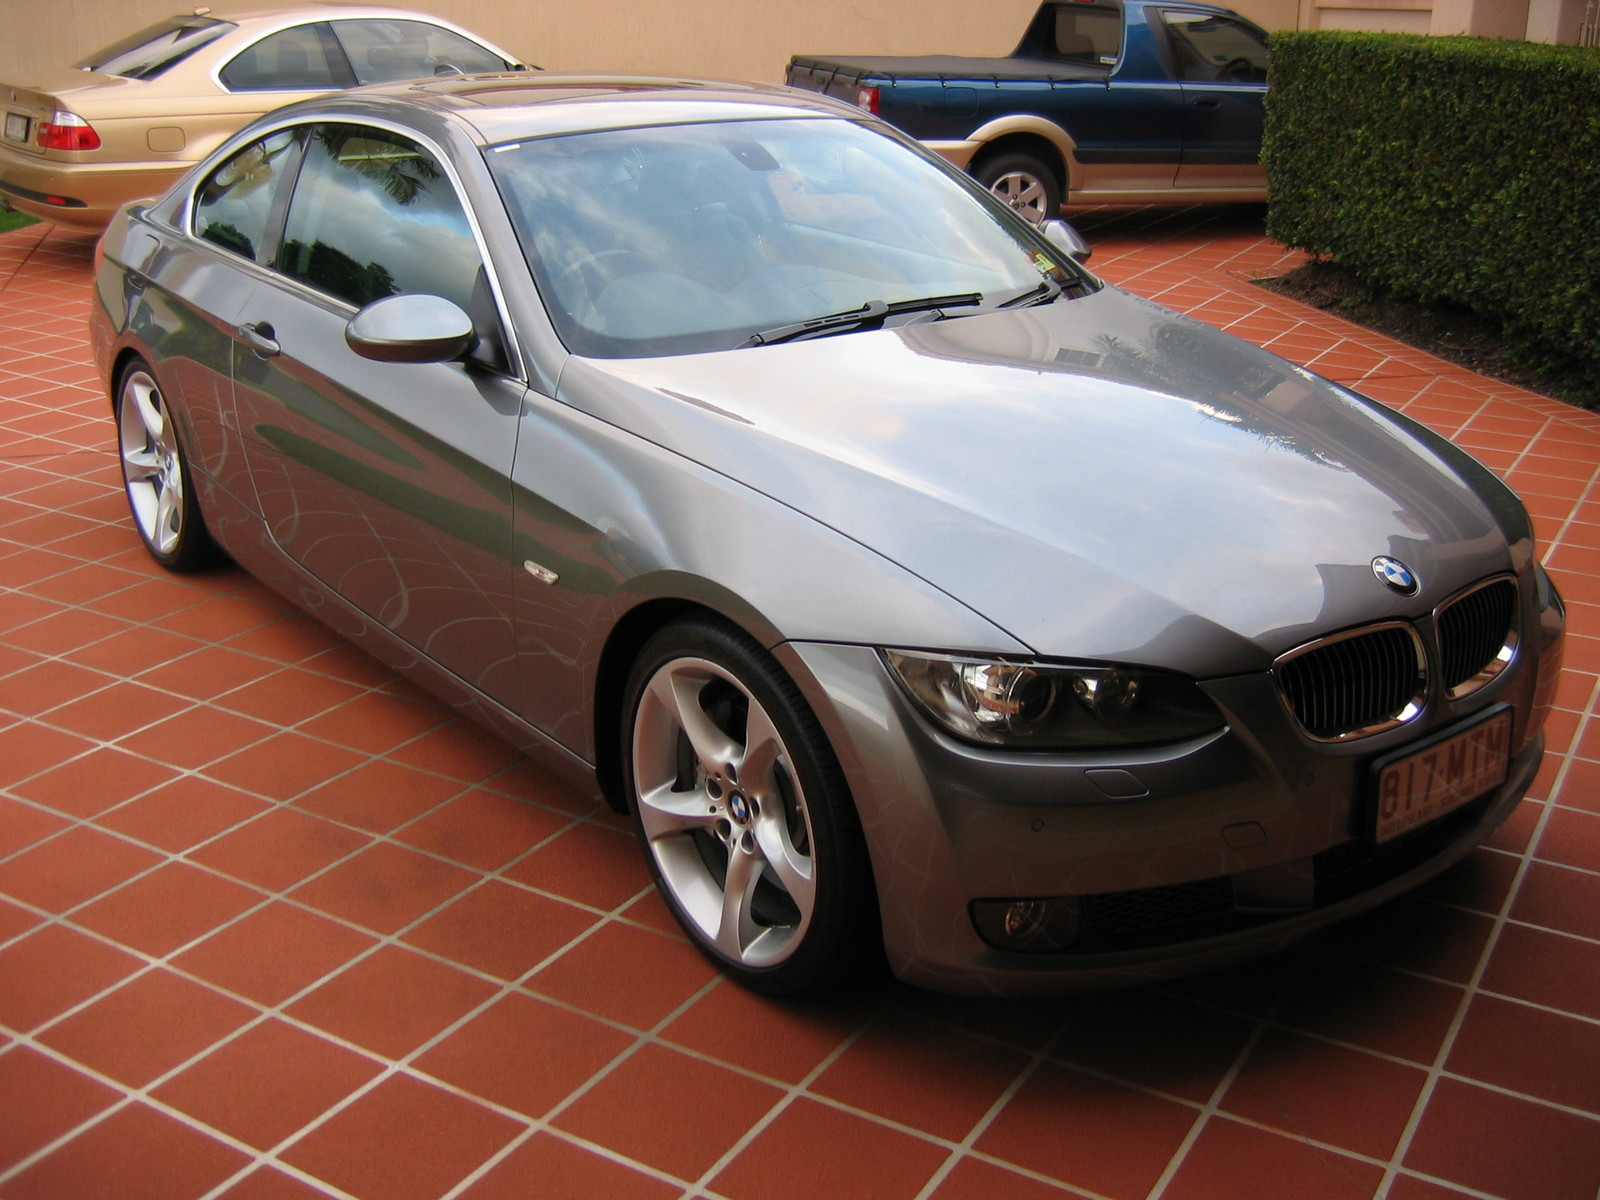 2007 Space Grey BMW 335i Coupe picture, mods, upgrades